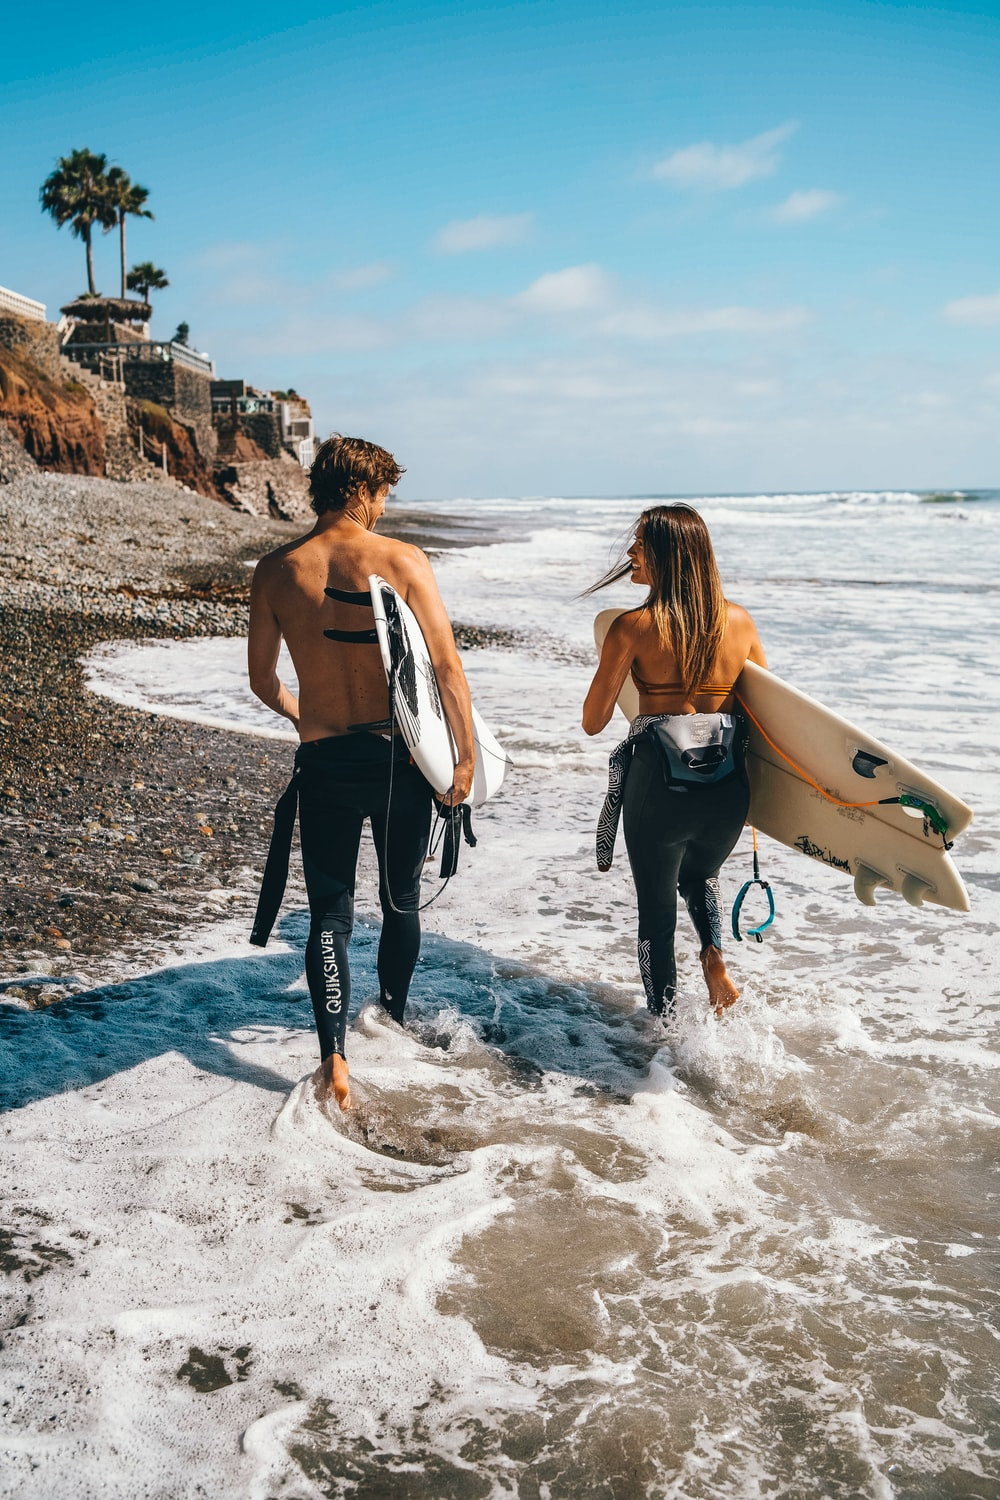 woman in white tank top and black pants holding white surfboard standing on beach during daytime